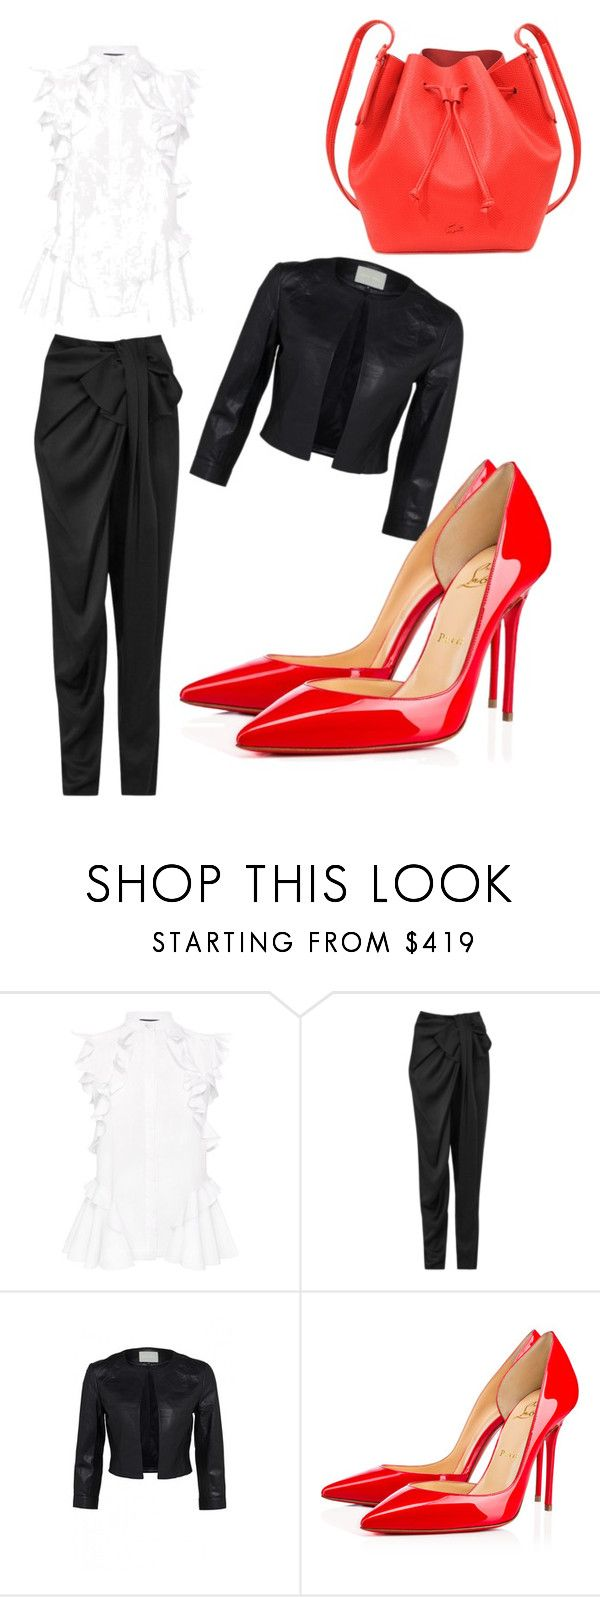 """Untitled #31"" by balog-viki on Polyvore featuring Alexander McQueen, Lanvin, Christian Louboutin and Lacoste"